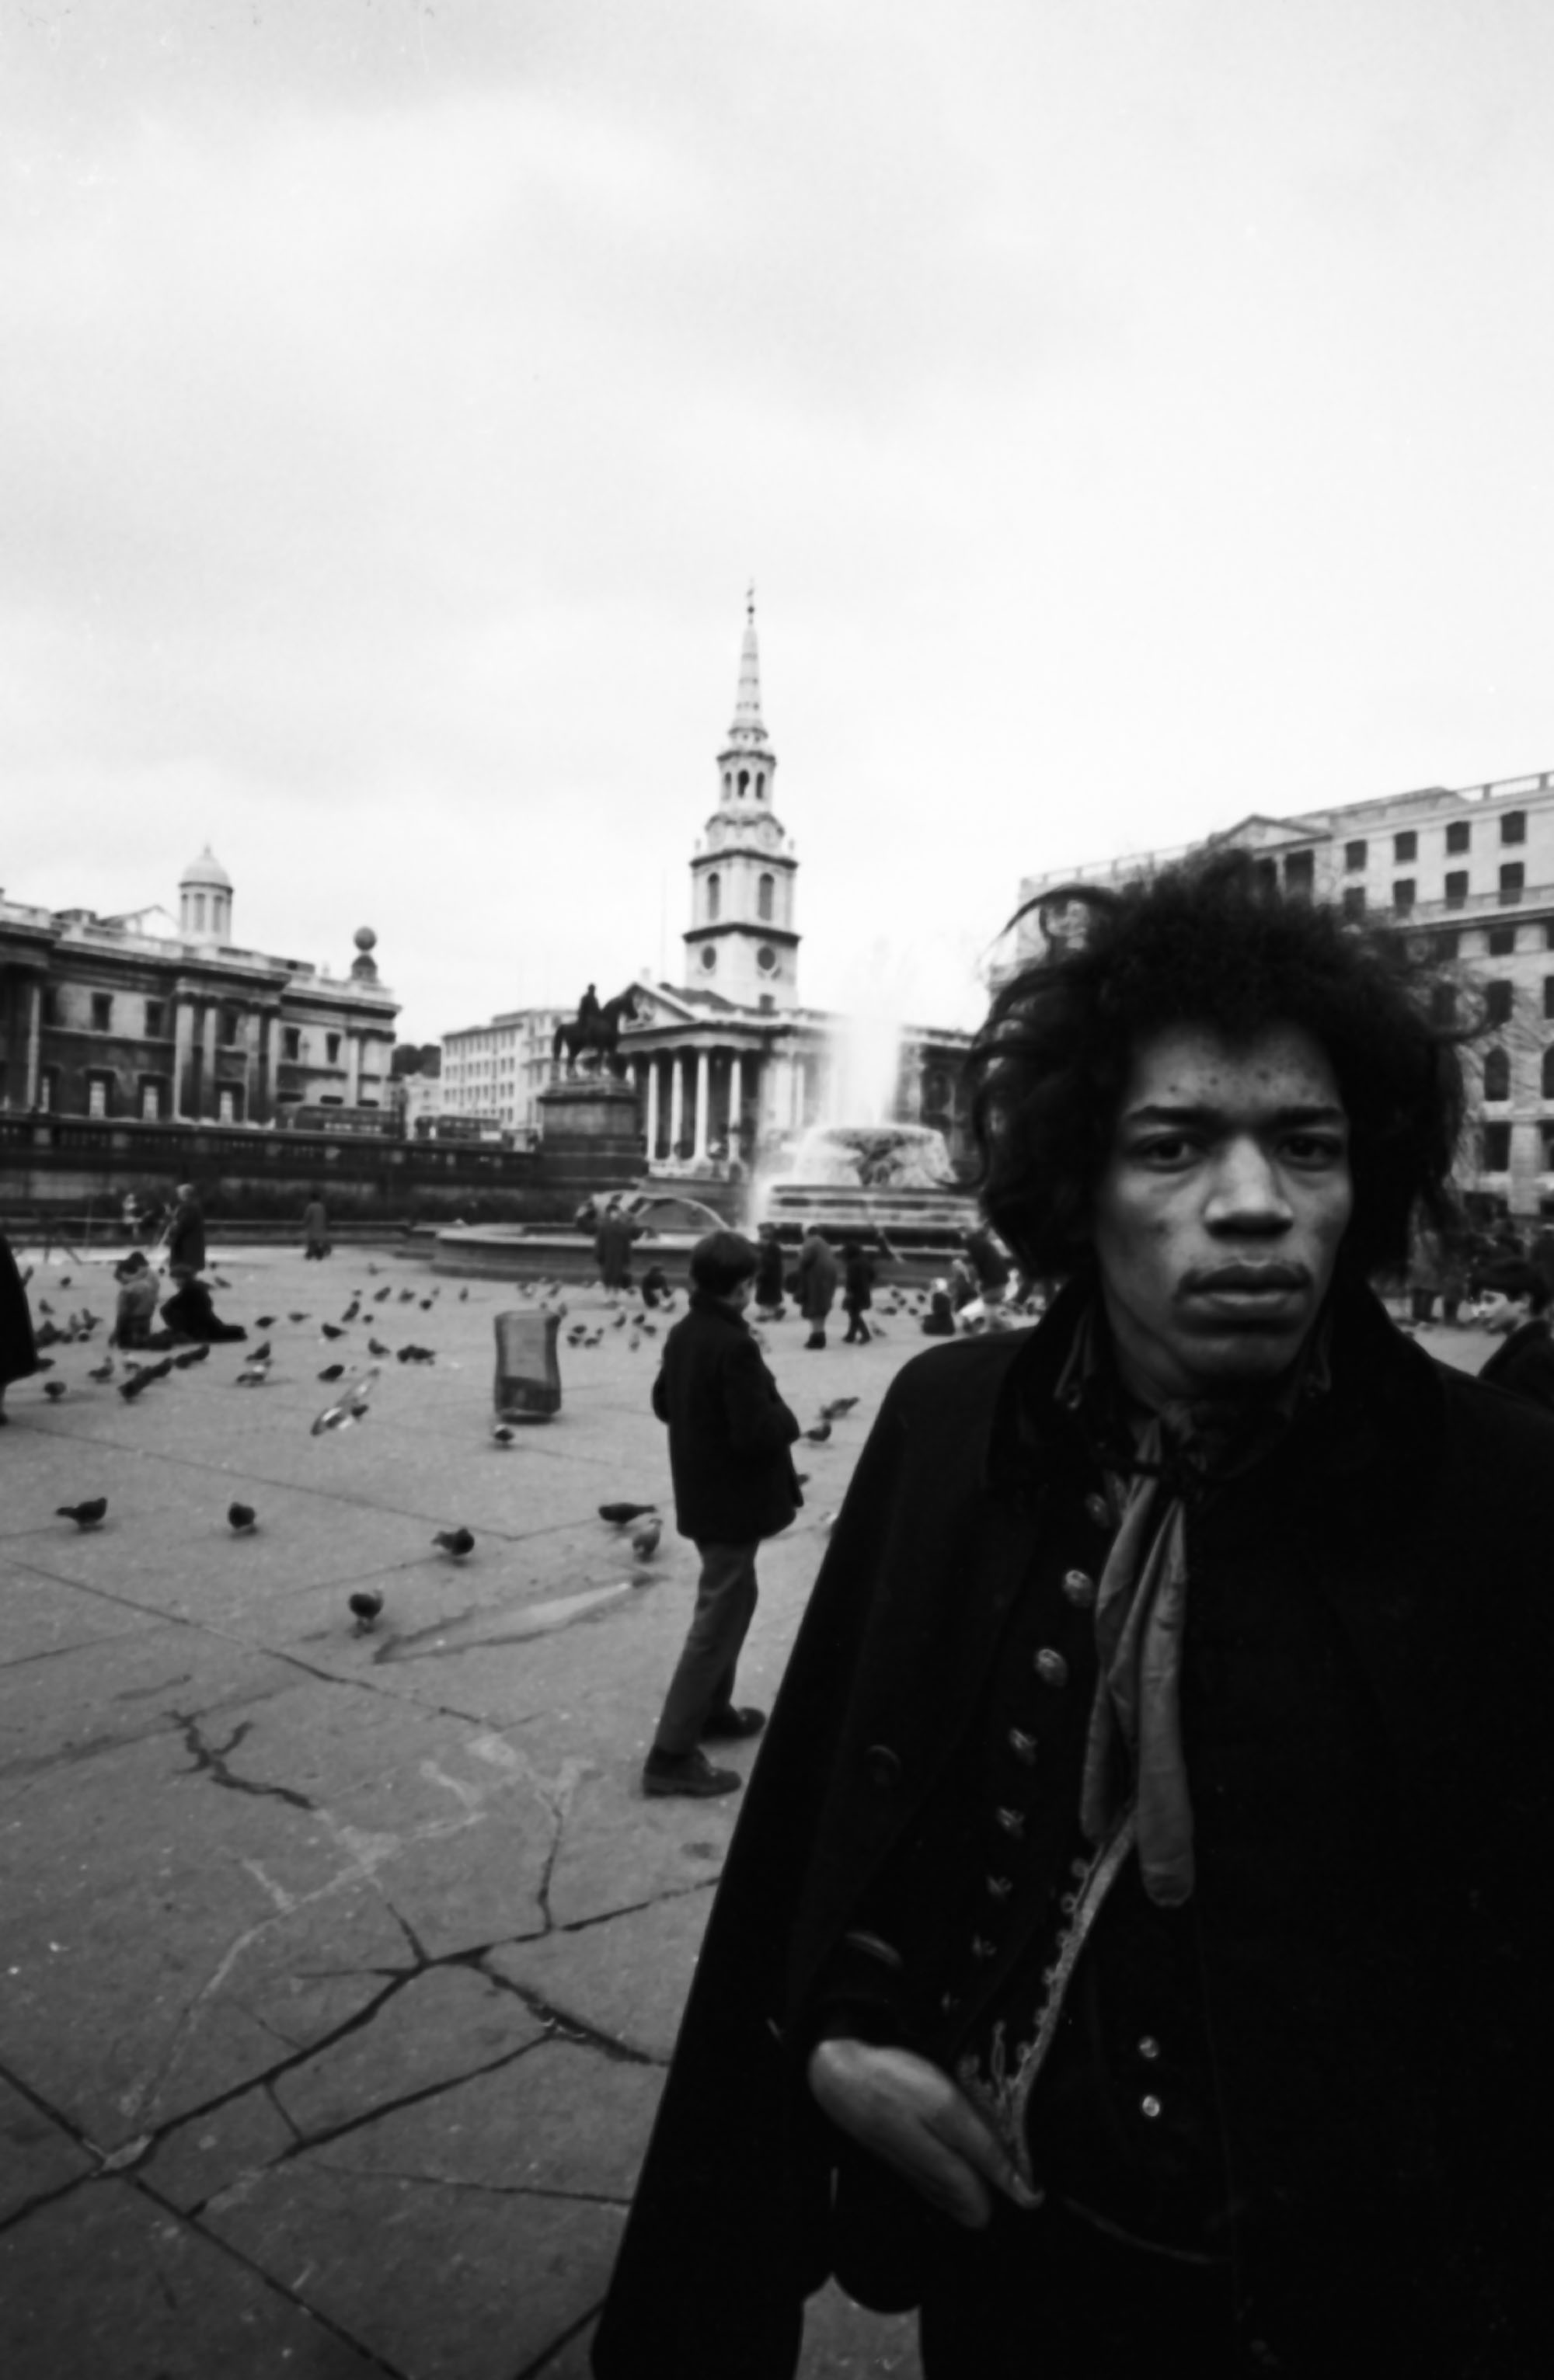 In this archive photo, rockstar Jimi Hendrix is photographed in London, England.